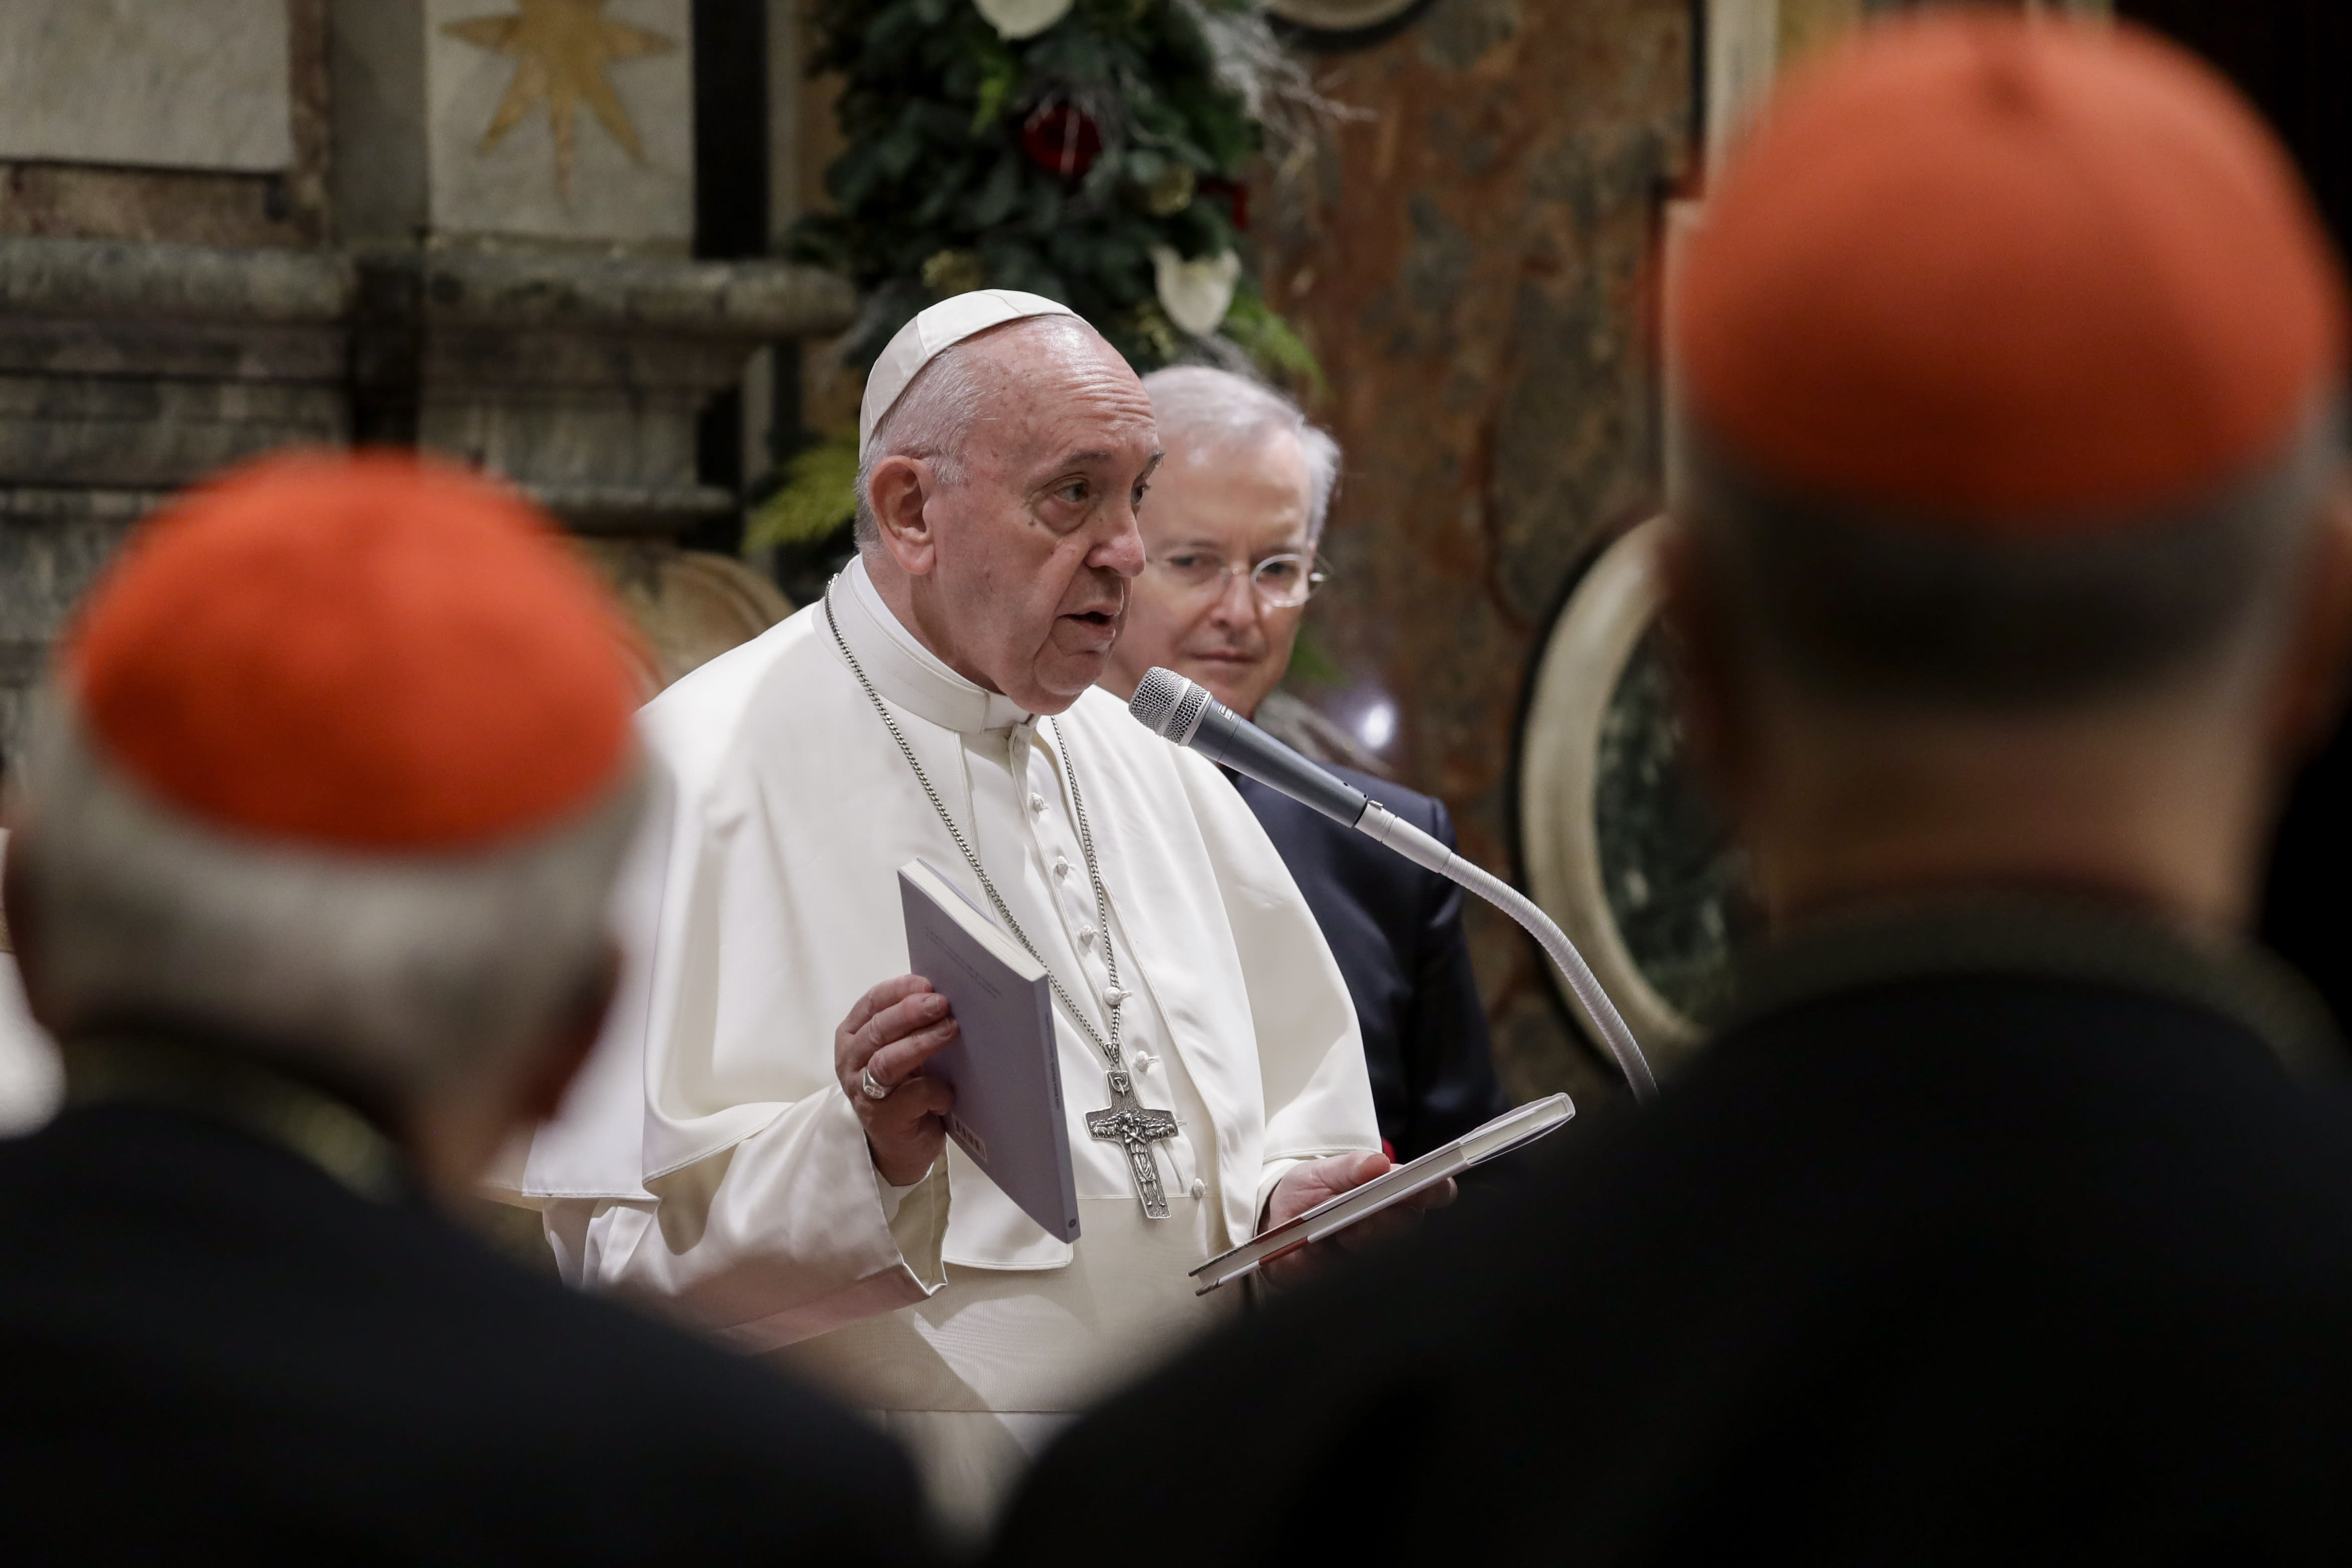 Church is losing influence, pope warns